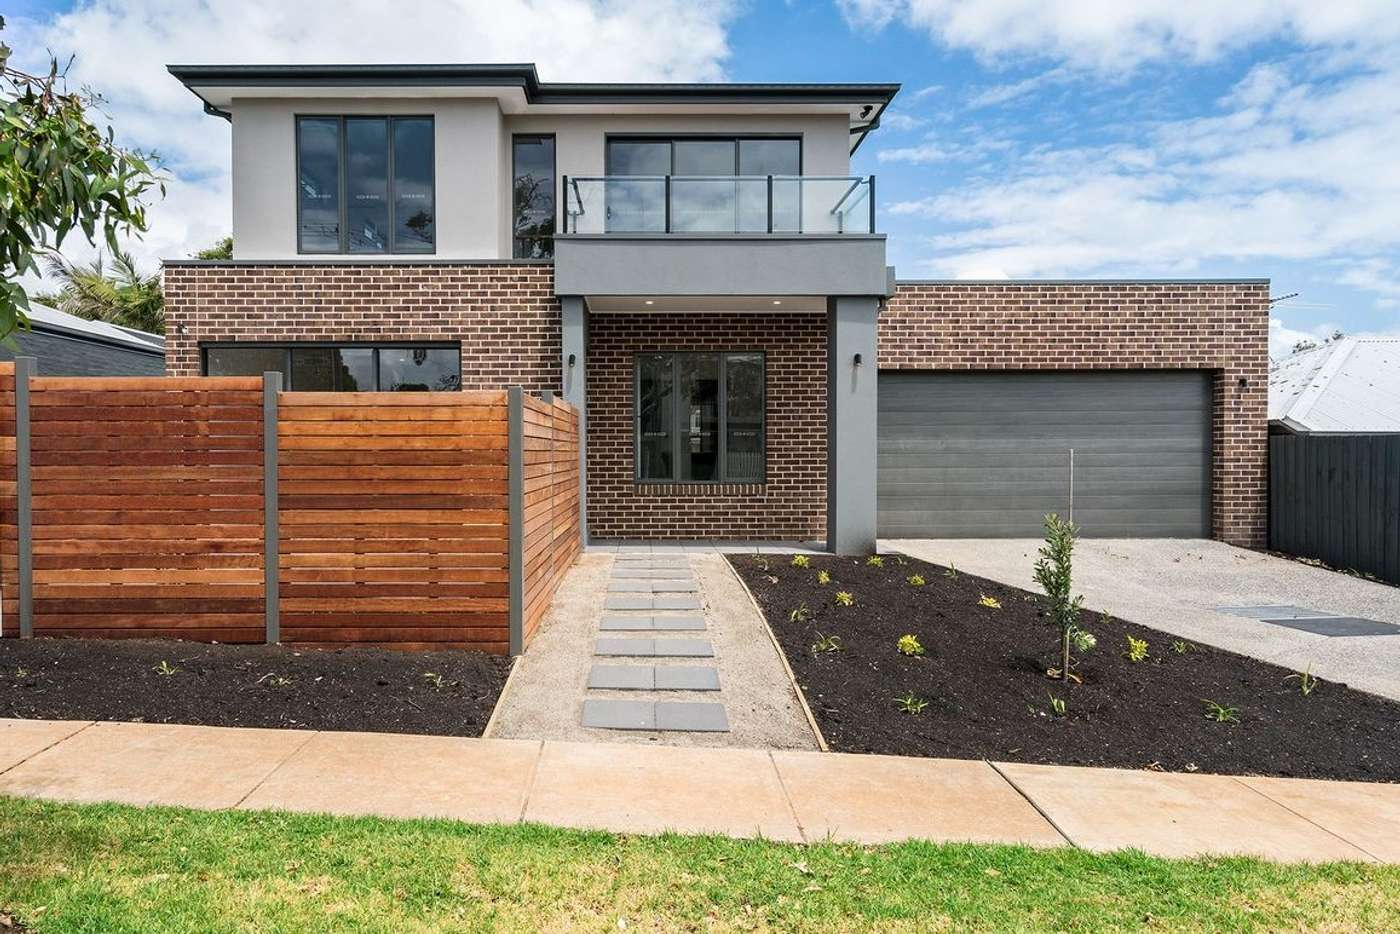 Main view of Homely townhouse listing, 1/20 Oakland Street, Mornington VIC 3931